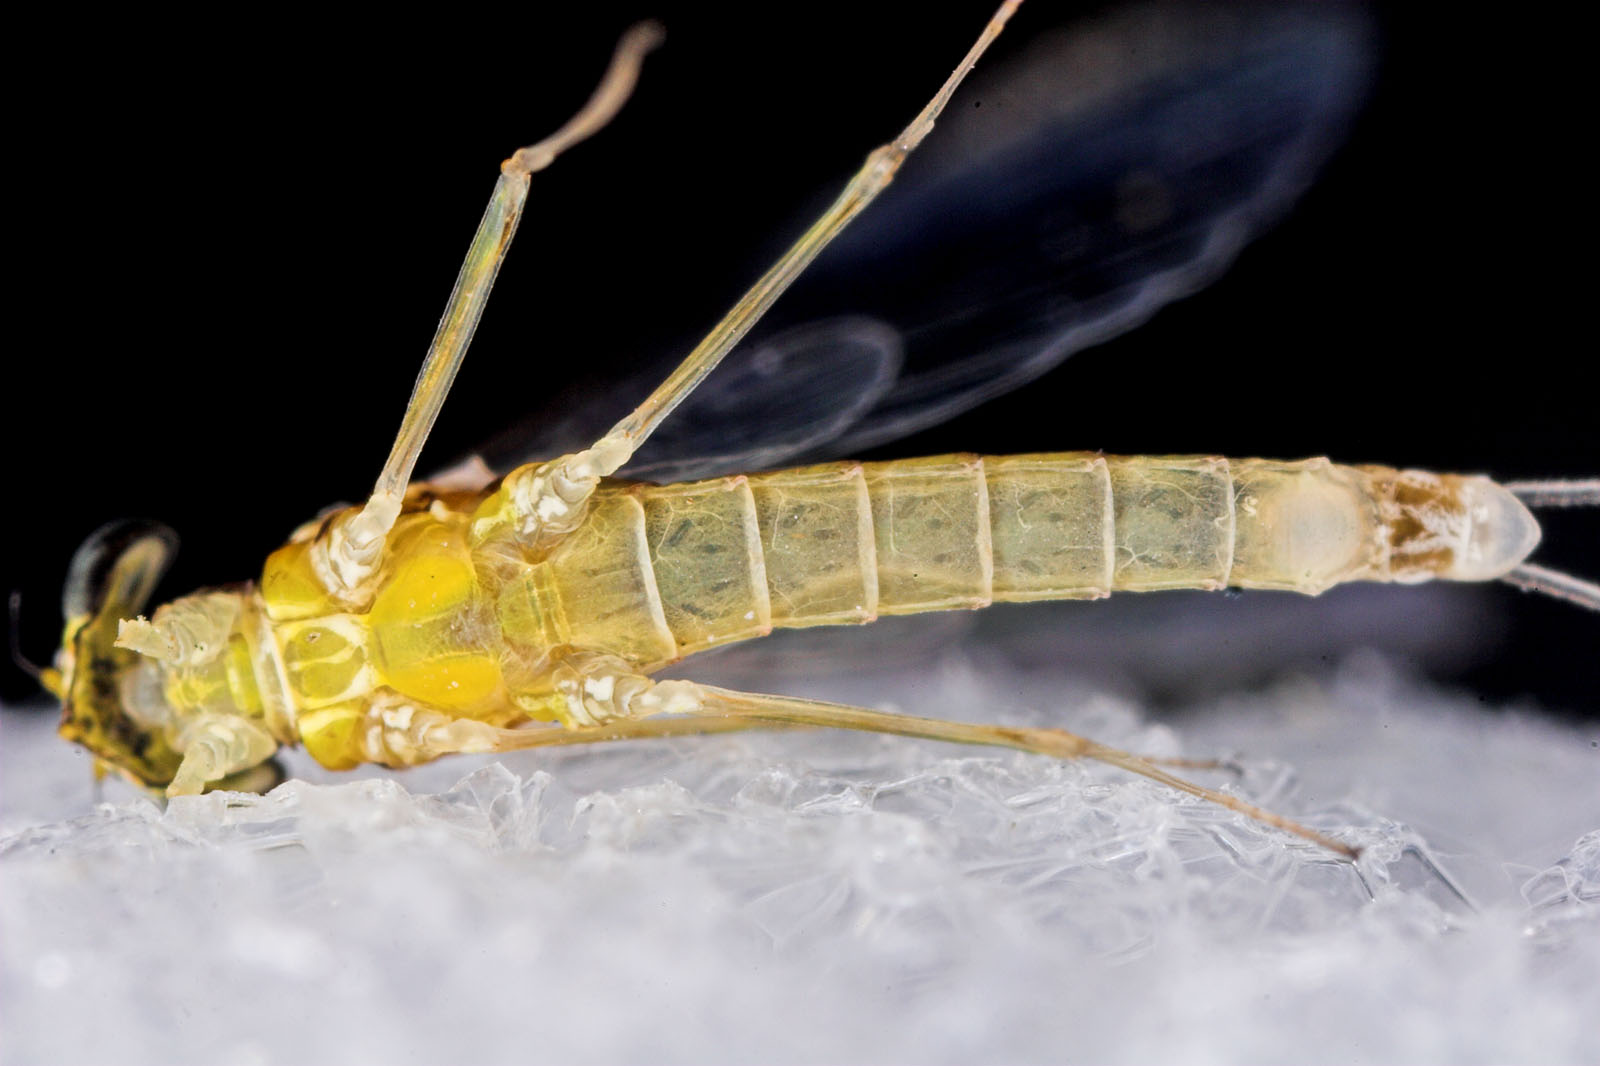 Female Leucrocuta hebe (Little Yellow Quill) Mayfly Spinner from Mystery Creek #43 in New York